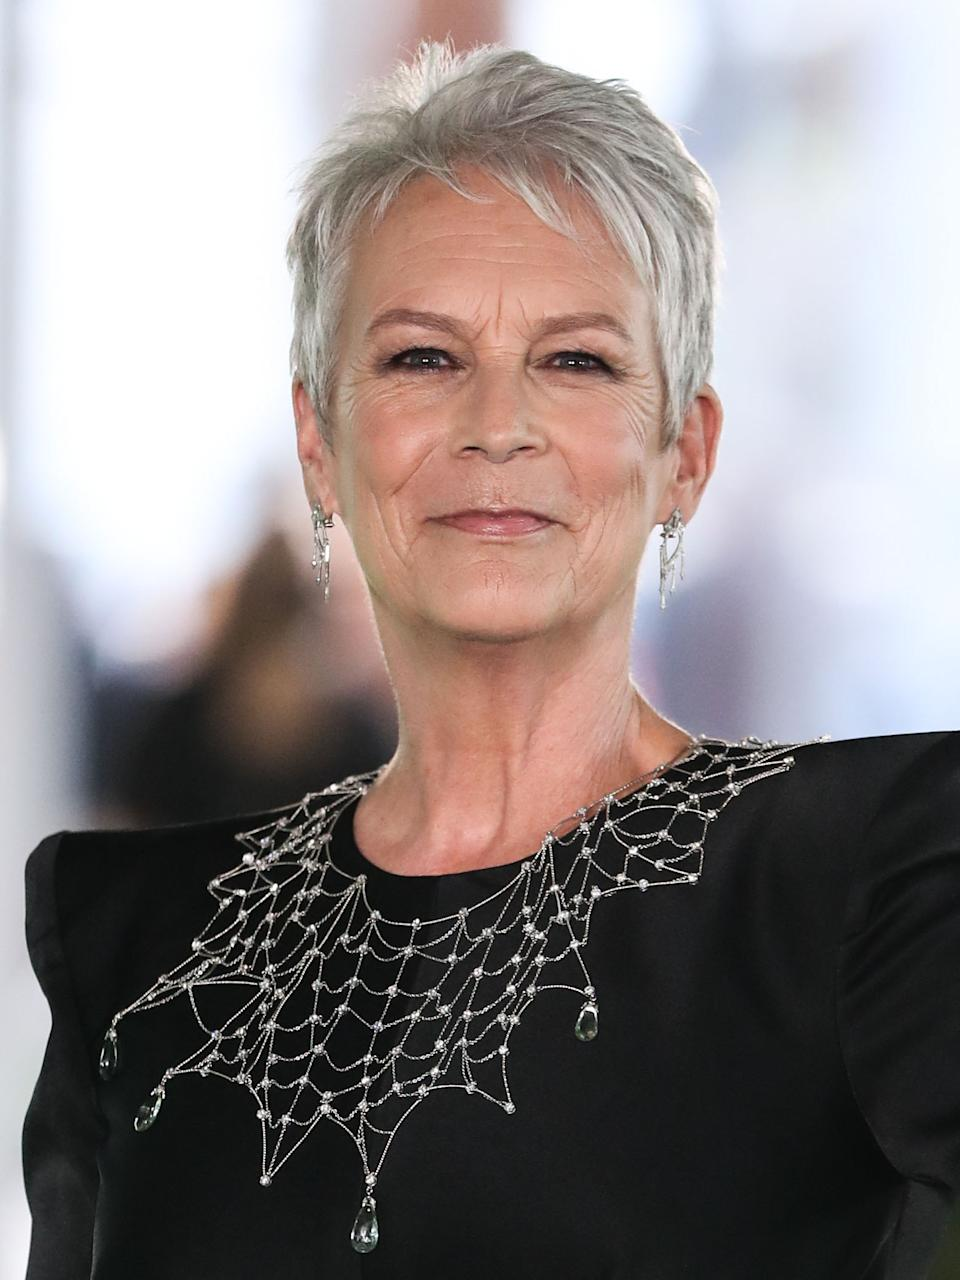 LOS ANGELES, CALIFORNIA, USA - SEPTEMBER 25: Actress Jamie Lee Curtis wearing a dress by Alex Perry arrives at the Academy Museum of Motion Pictures Opening Gala held at the Academy Museum of Motion Pictures on September 25, 2021 in Los Angeles, California, United States. (Photo by Xavier Collin/Image Press Agency/Sipa USA)